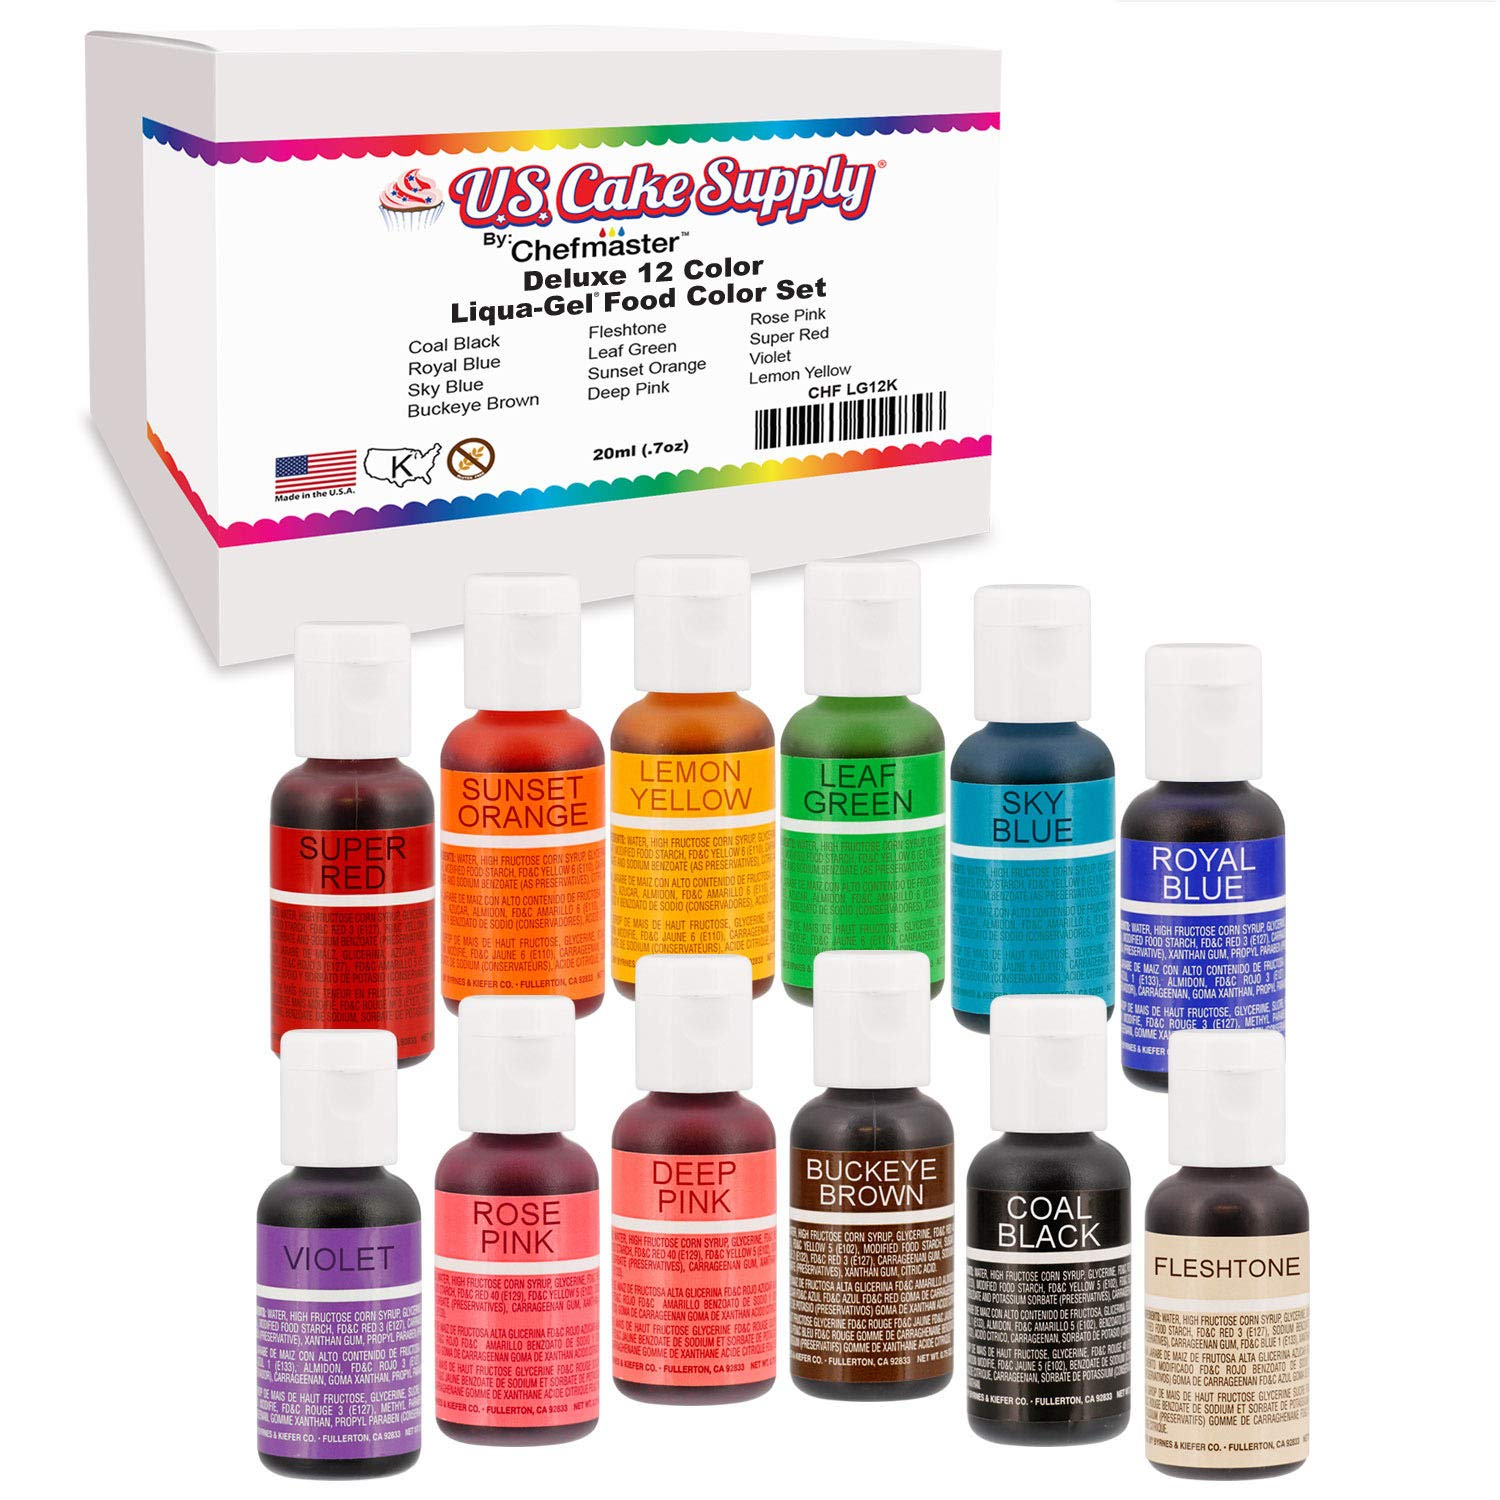 Made in the U.S.A. -12 Color Cake Food Coloring Liqua-Gel Decorating Baking Set - U.S. Cake Supply .75 fl. Oz. (20ml) Bottles Primary Popular Colors - Made in the U.S.A. Vegan & Kosher